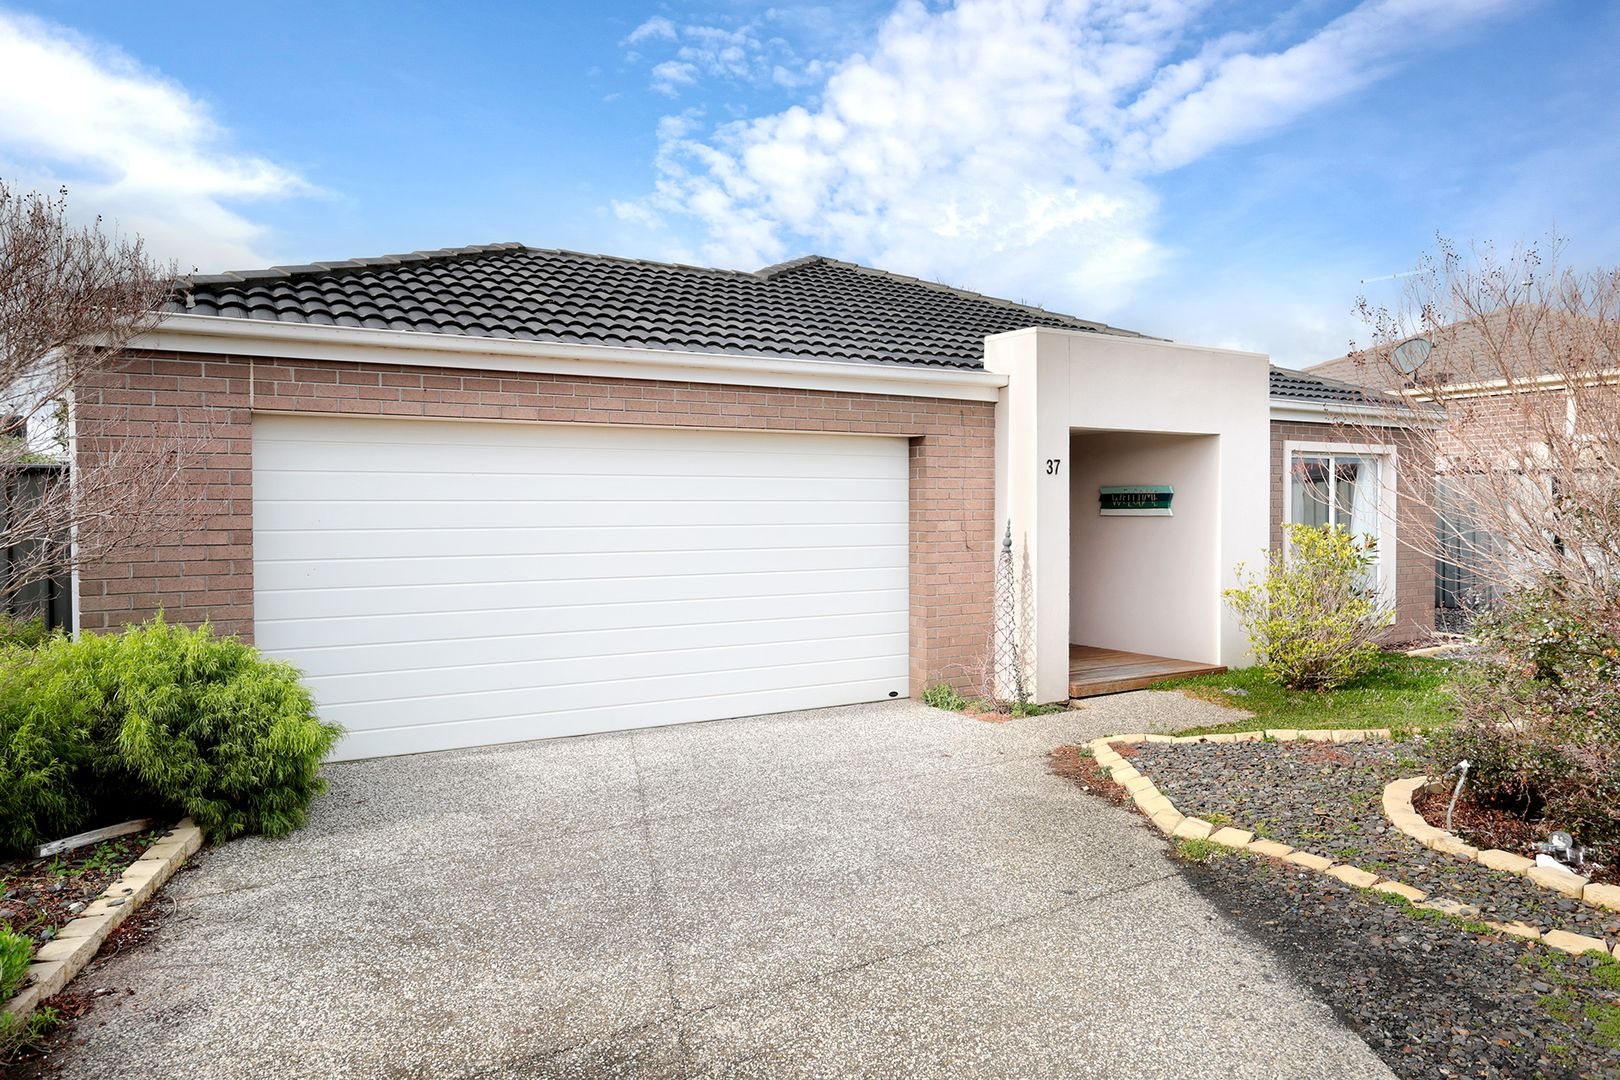 37 Villiers Drive, Point Cook VIC 3030, Image 0